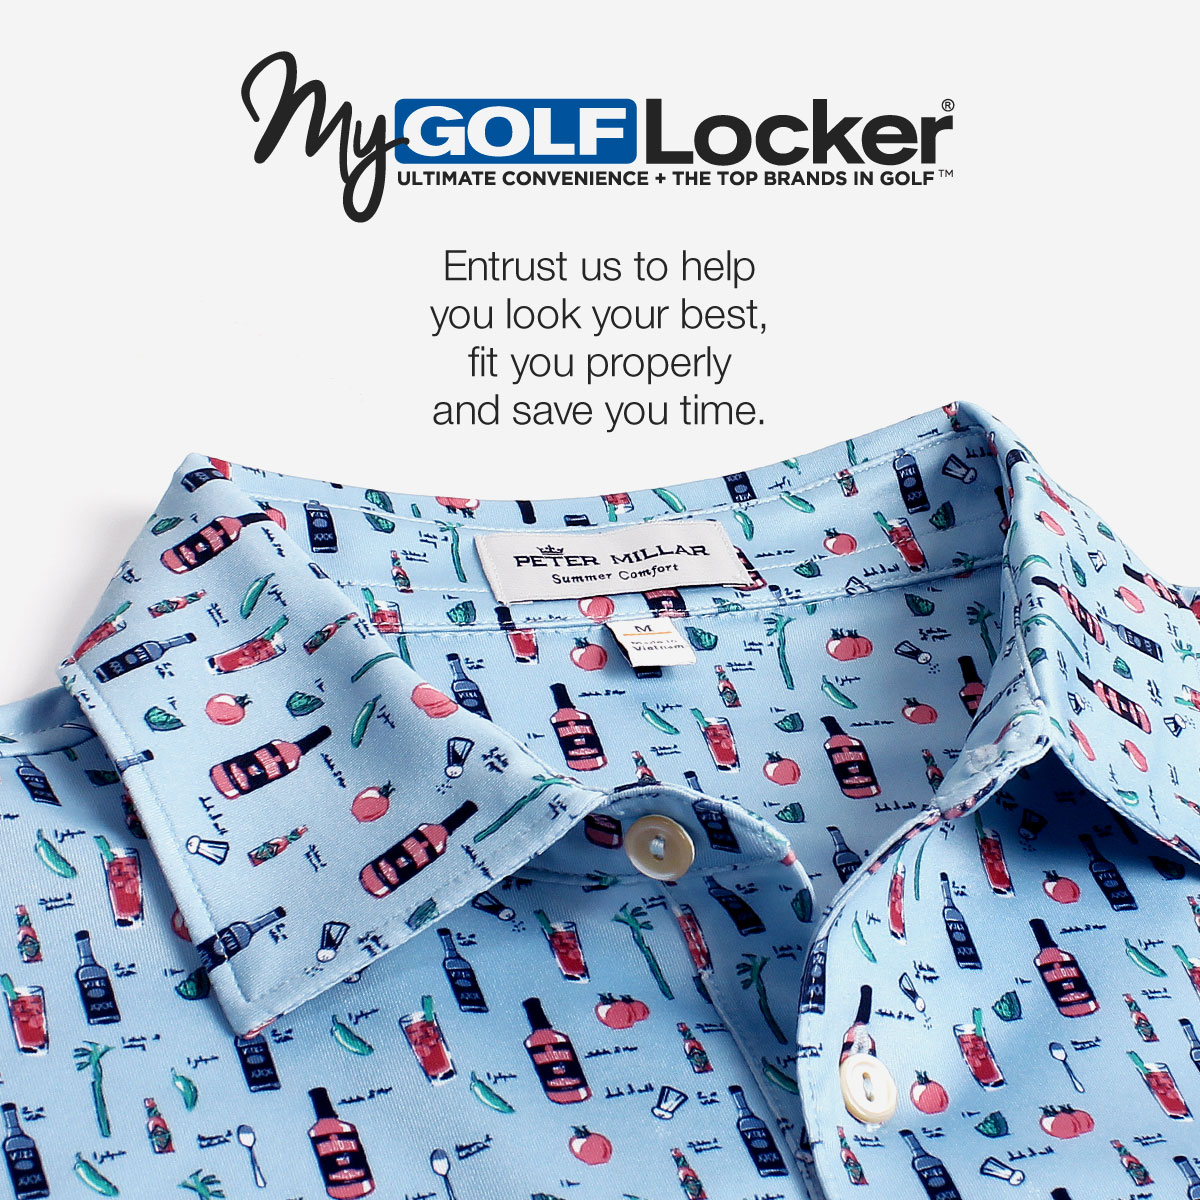 My Golf Locker - Entrust us to help you look your best, fit you properly and save you time.